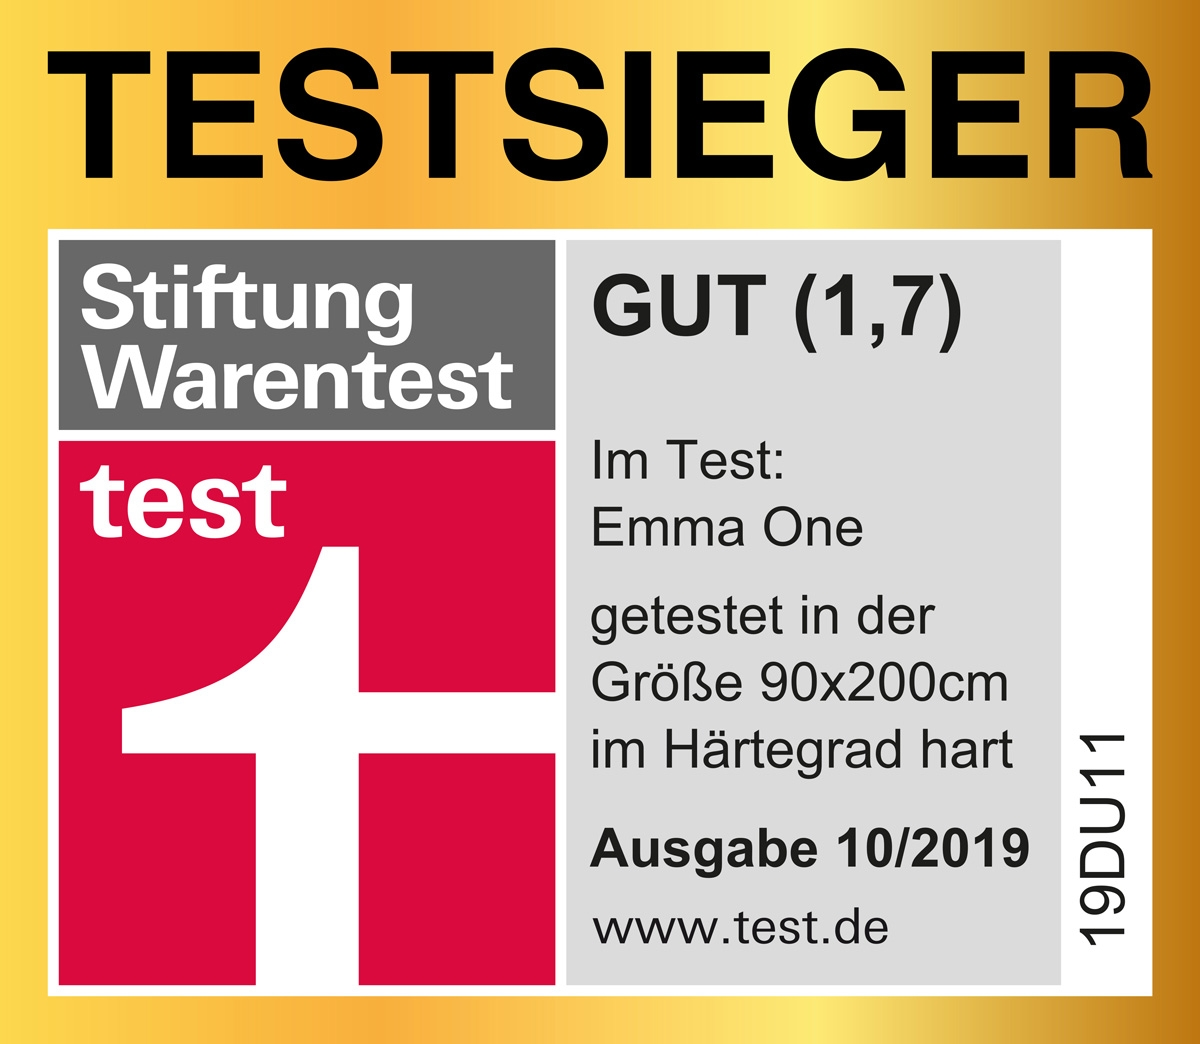 Topper Test 2019 Stiftung Warentest